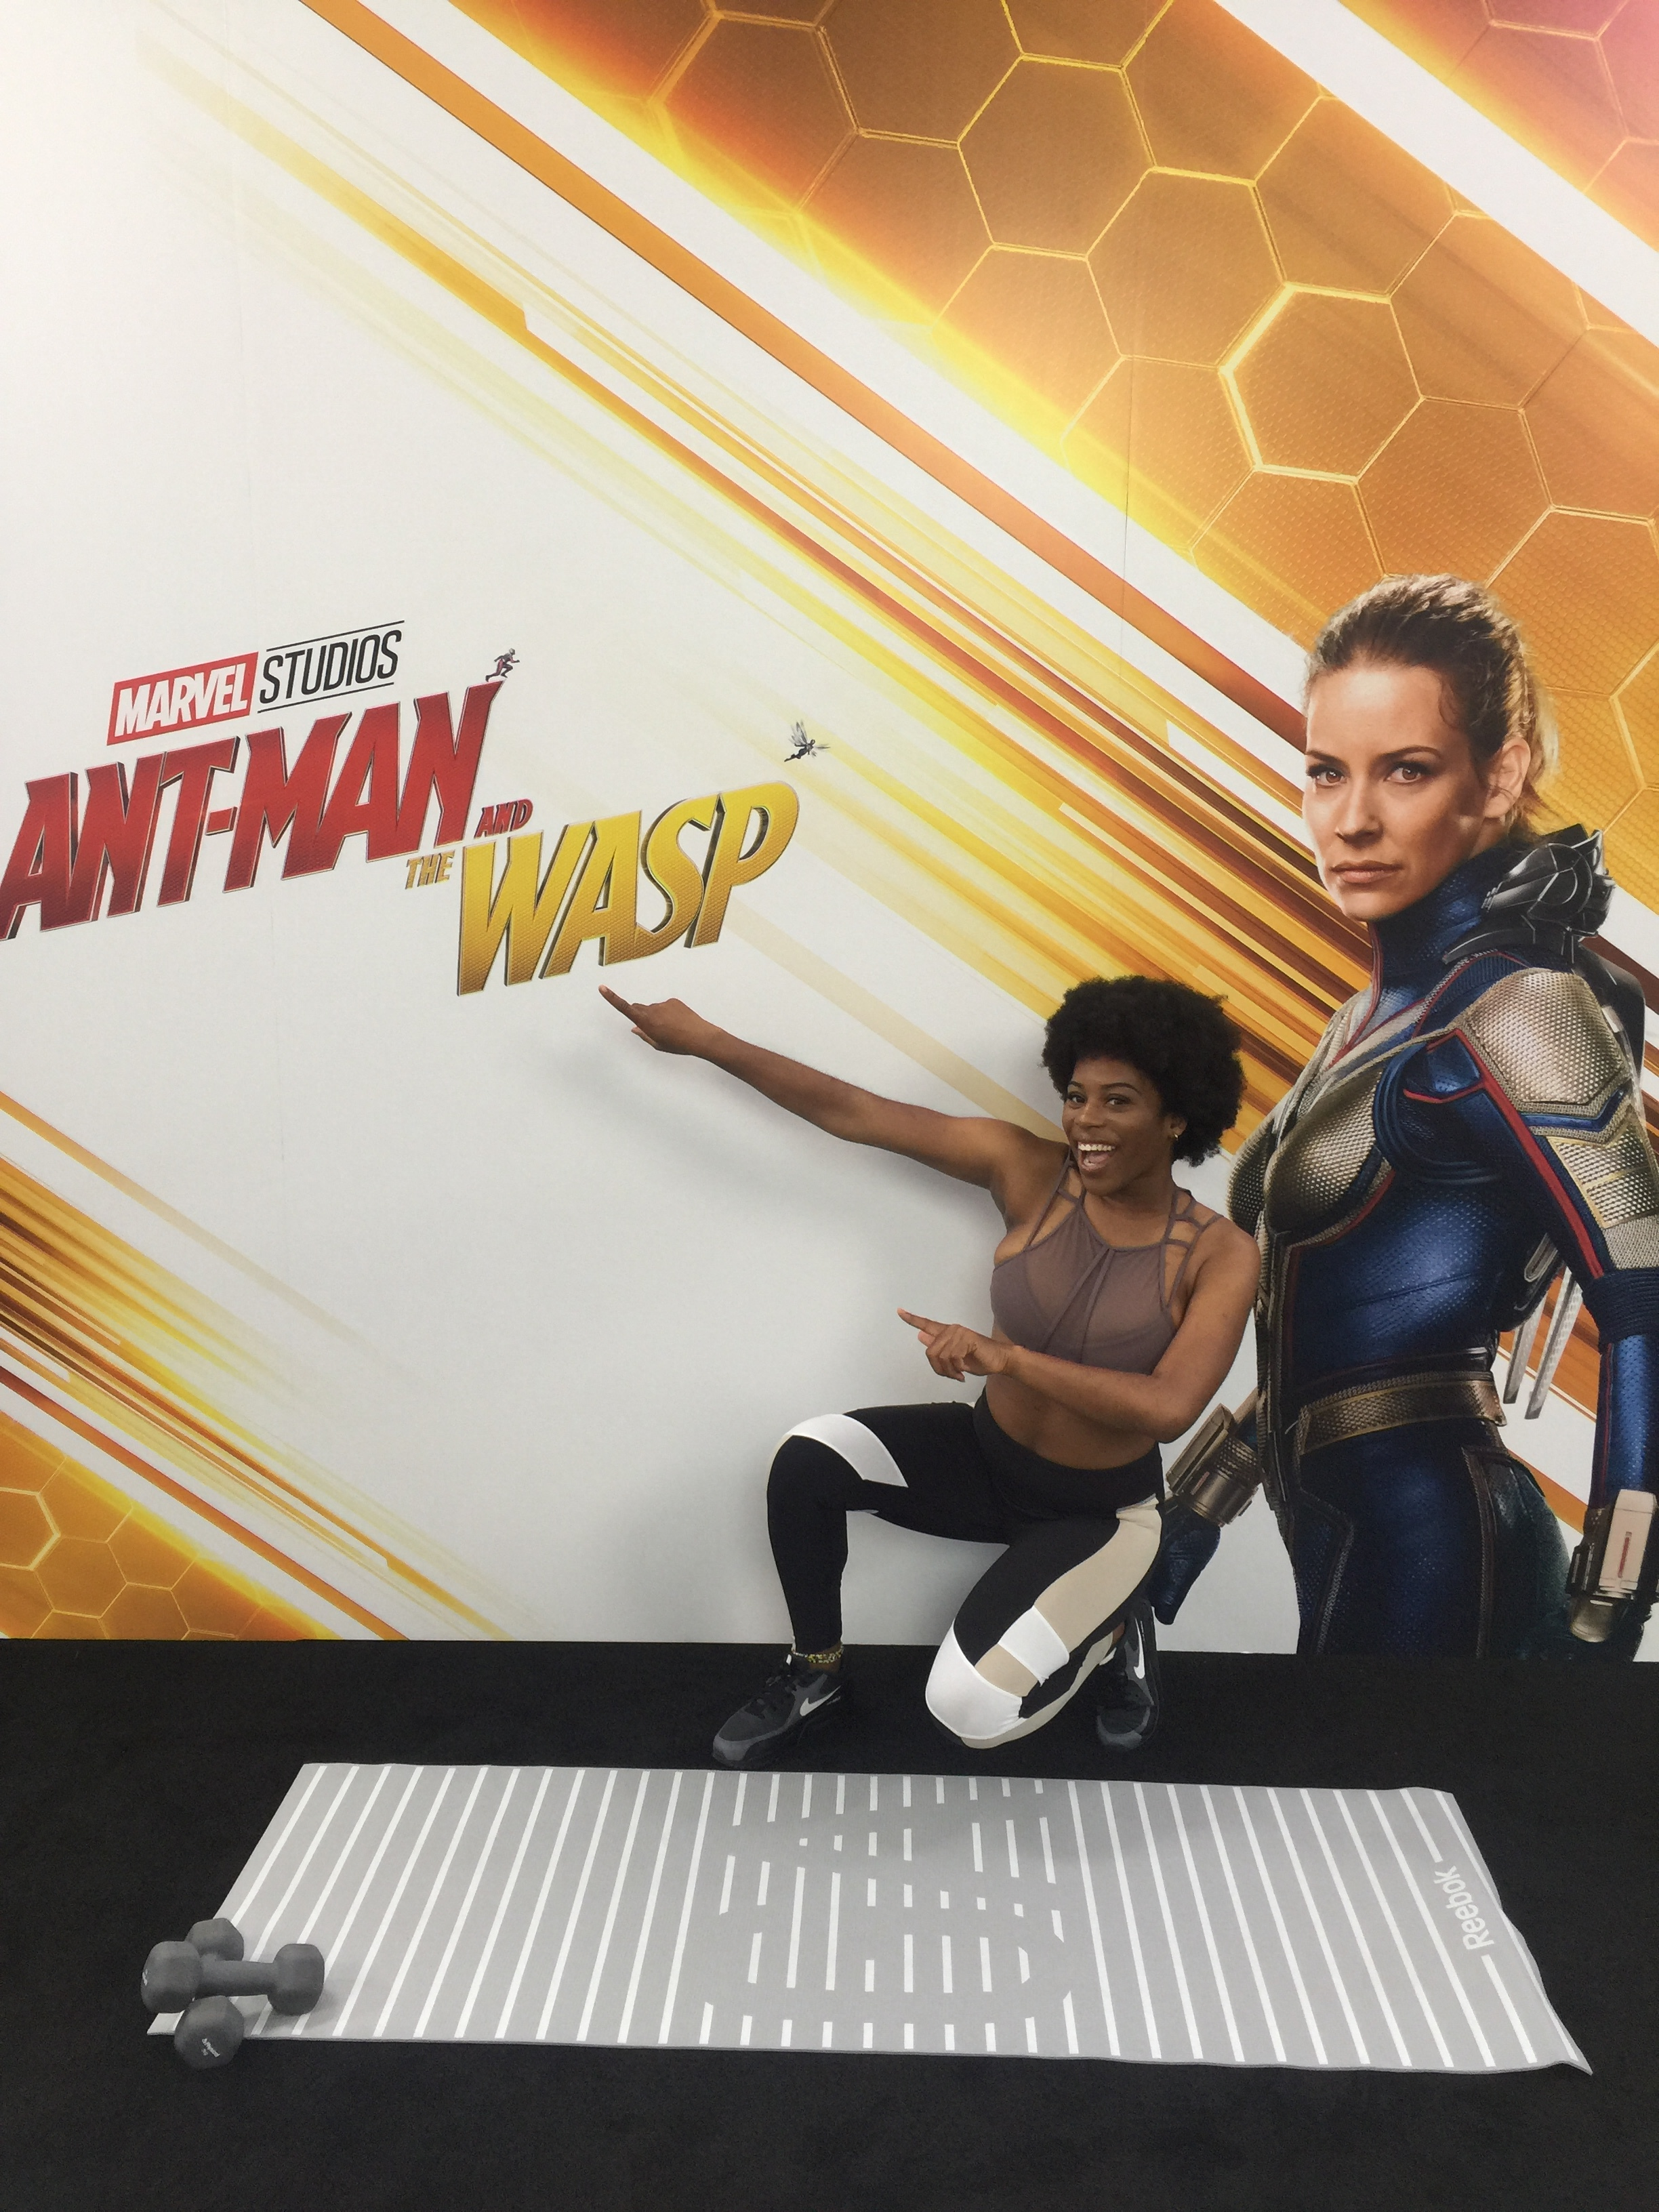 Bam Bam Boogie Dance Fitness has worked on promotional projects with Marvel in the release of Ant-Man and the Wasp.